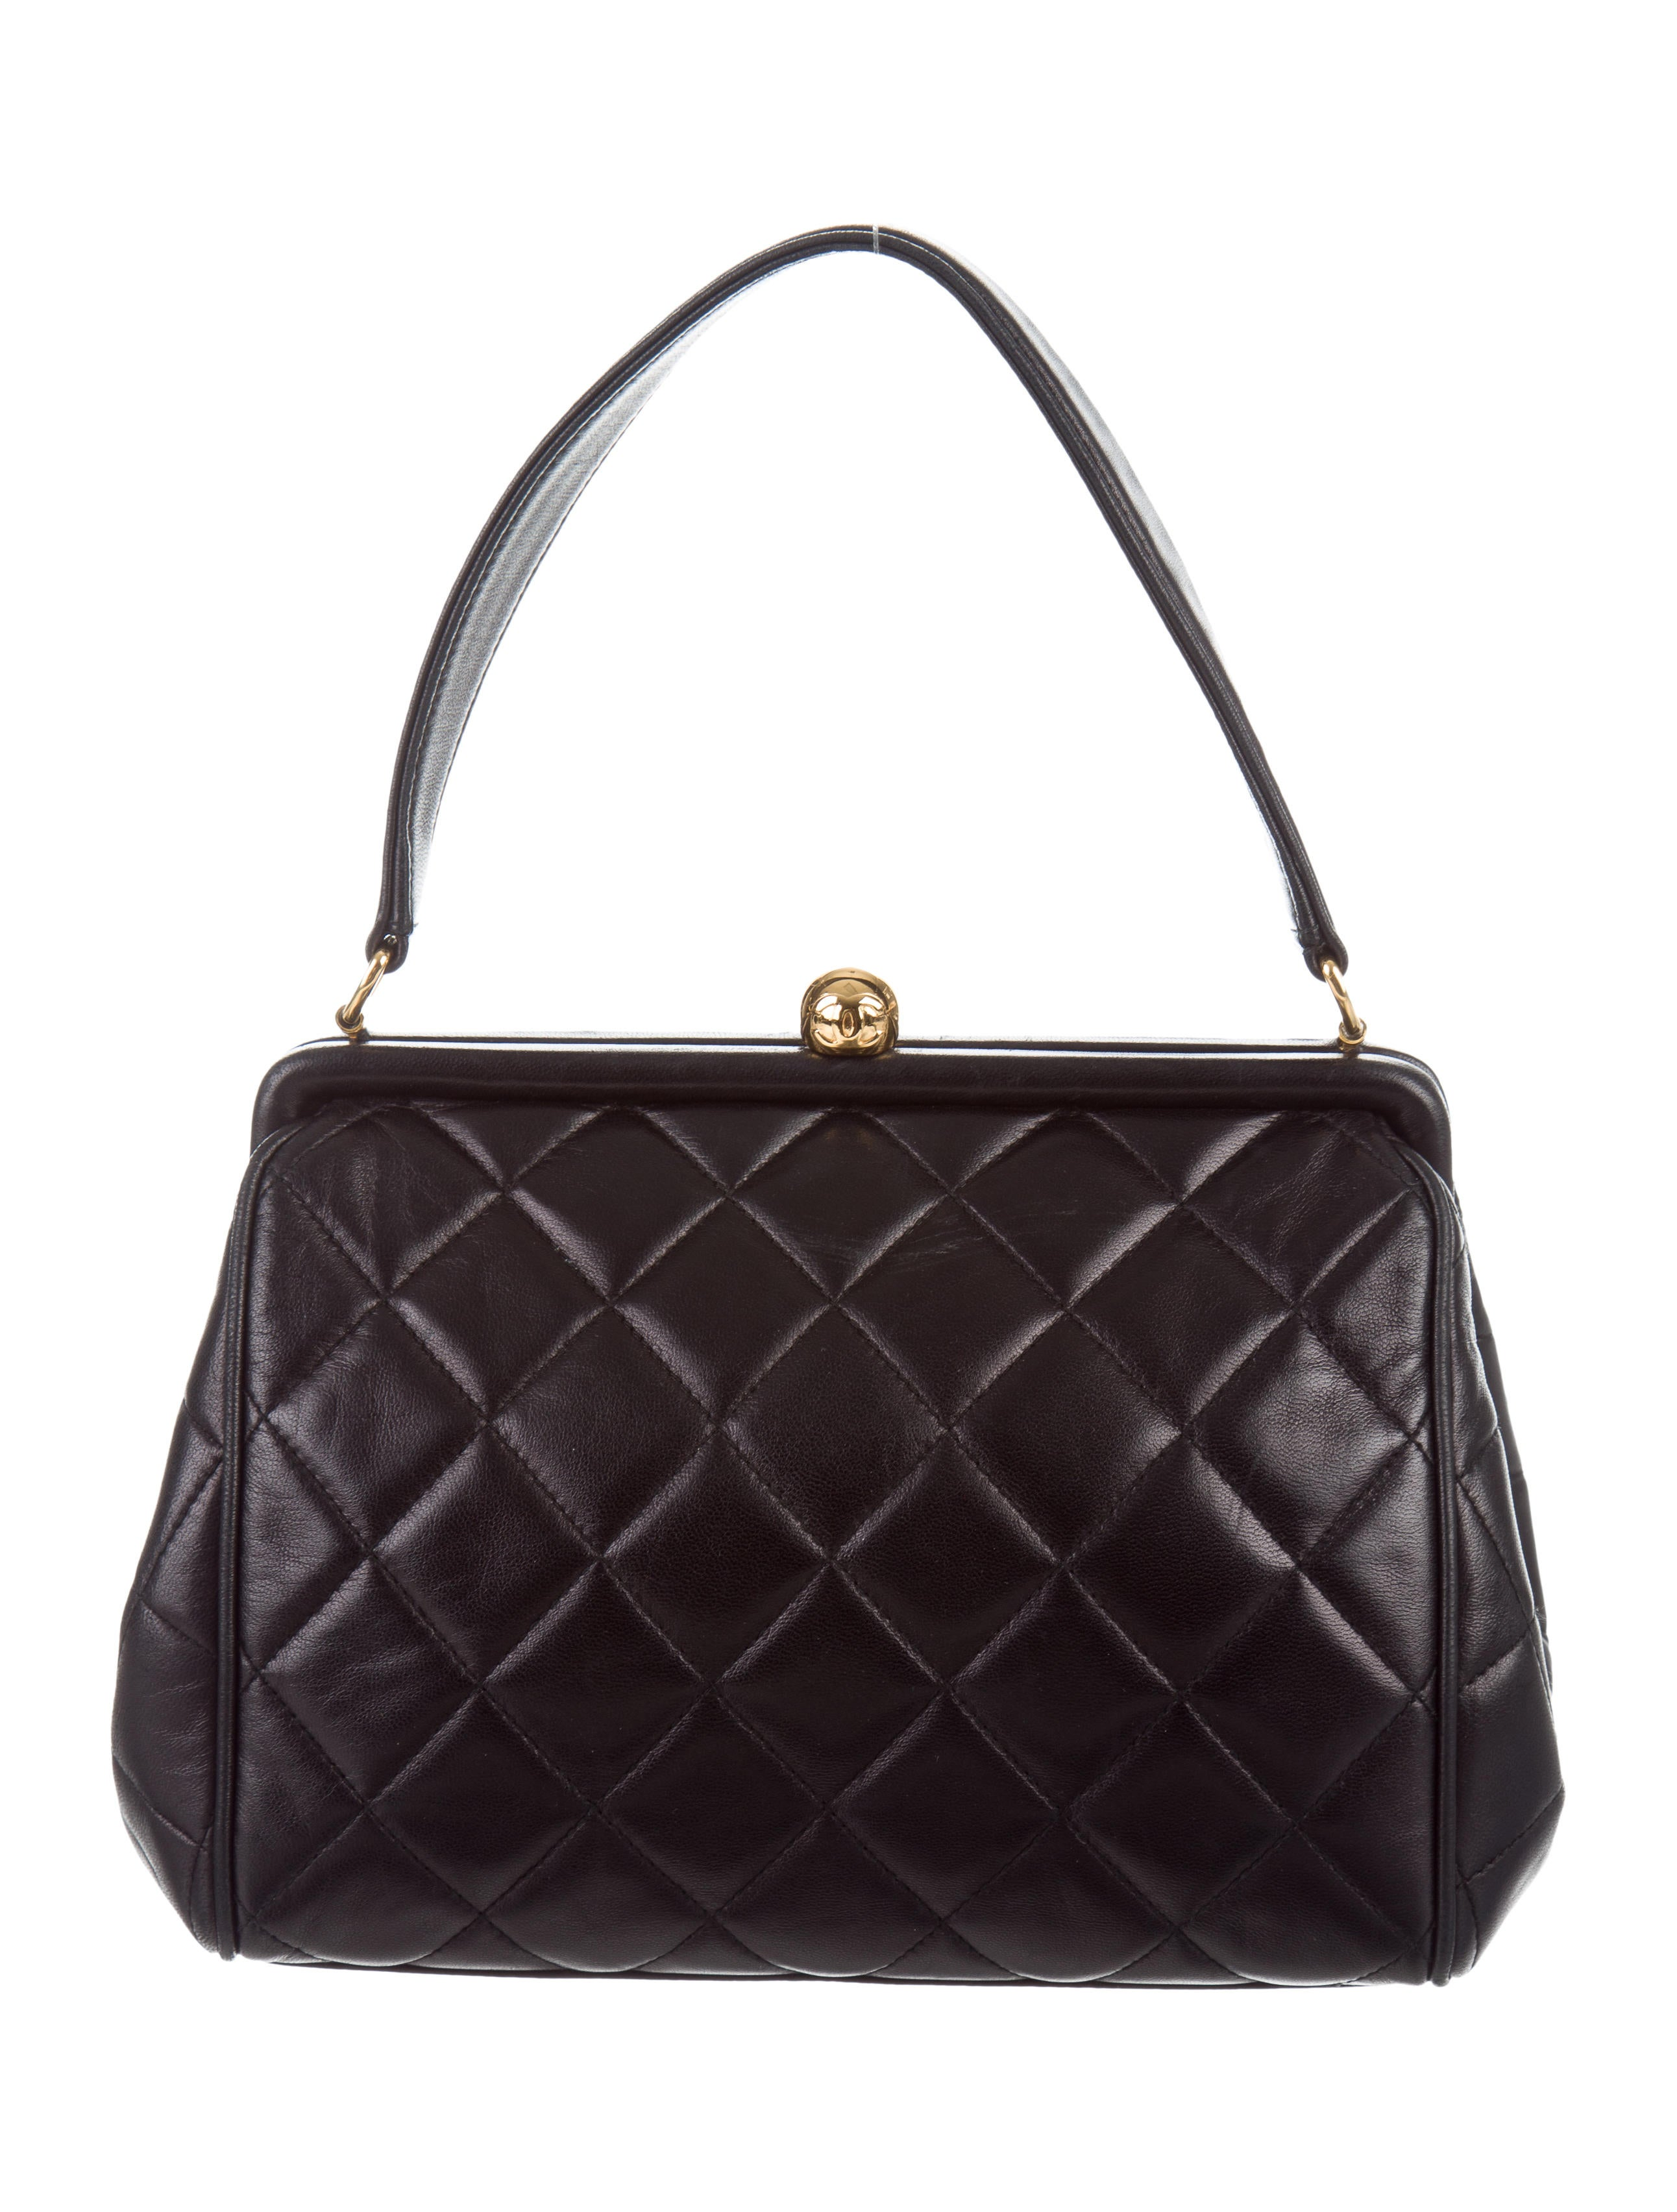 Chanel Quilted Lambskin Framed Bag